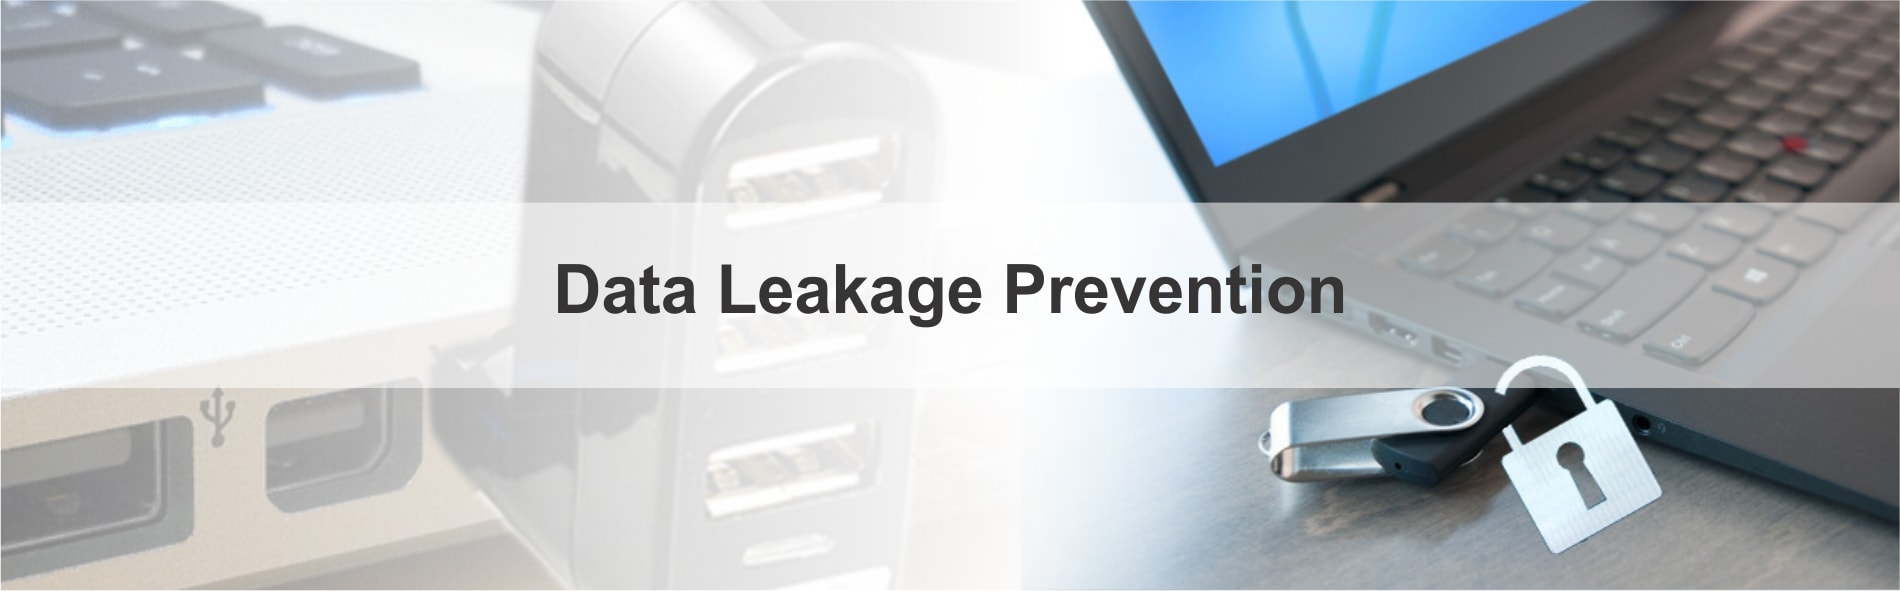 Data Leakage Prevention-min